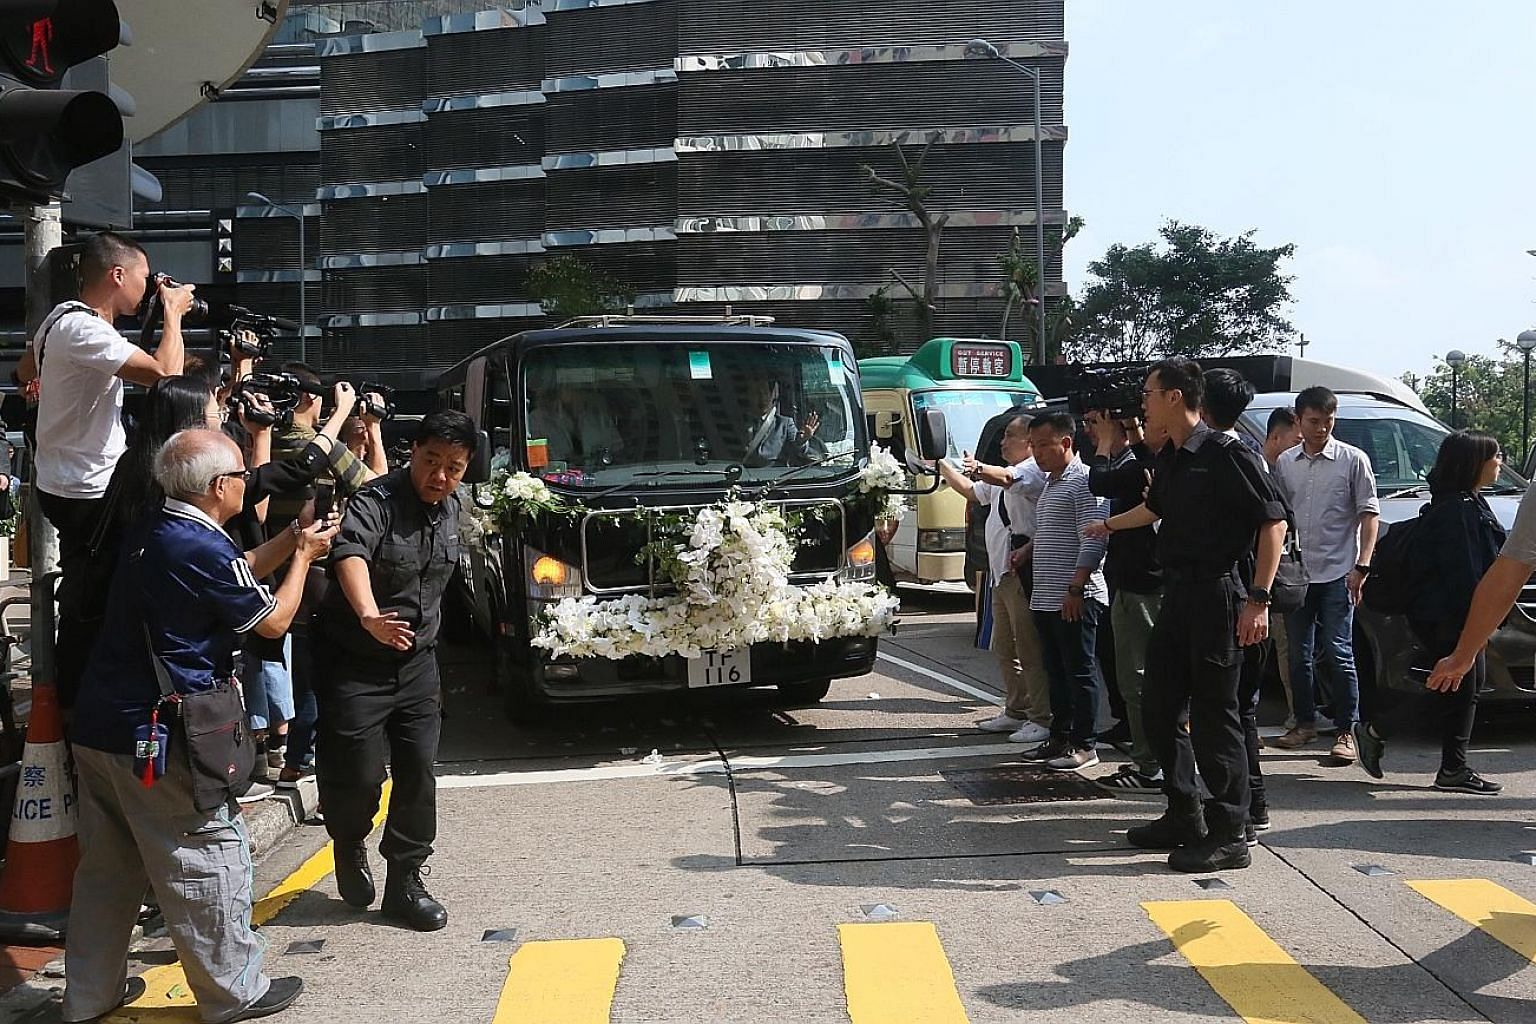 Left: Mr Louis Cha's son Andrew carrying his late father's photo into the hearse yesterday. Above: The hearse leaving the funeral parlour for Lantau island's Po Lin Monastery, where Mr Cha was cremated in a Buddhist ceremony. He died at the age of 94